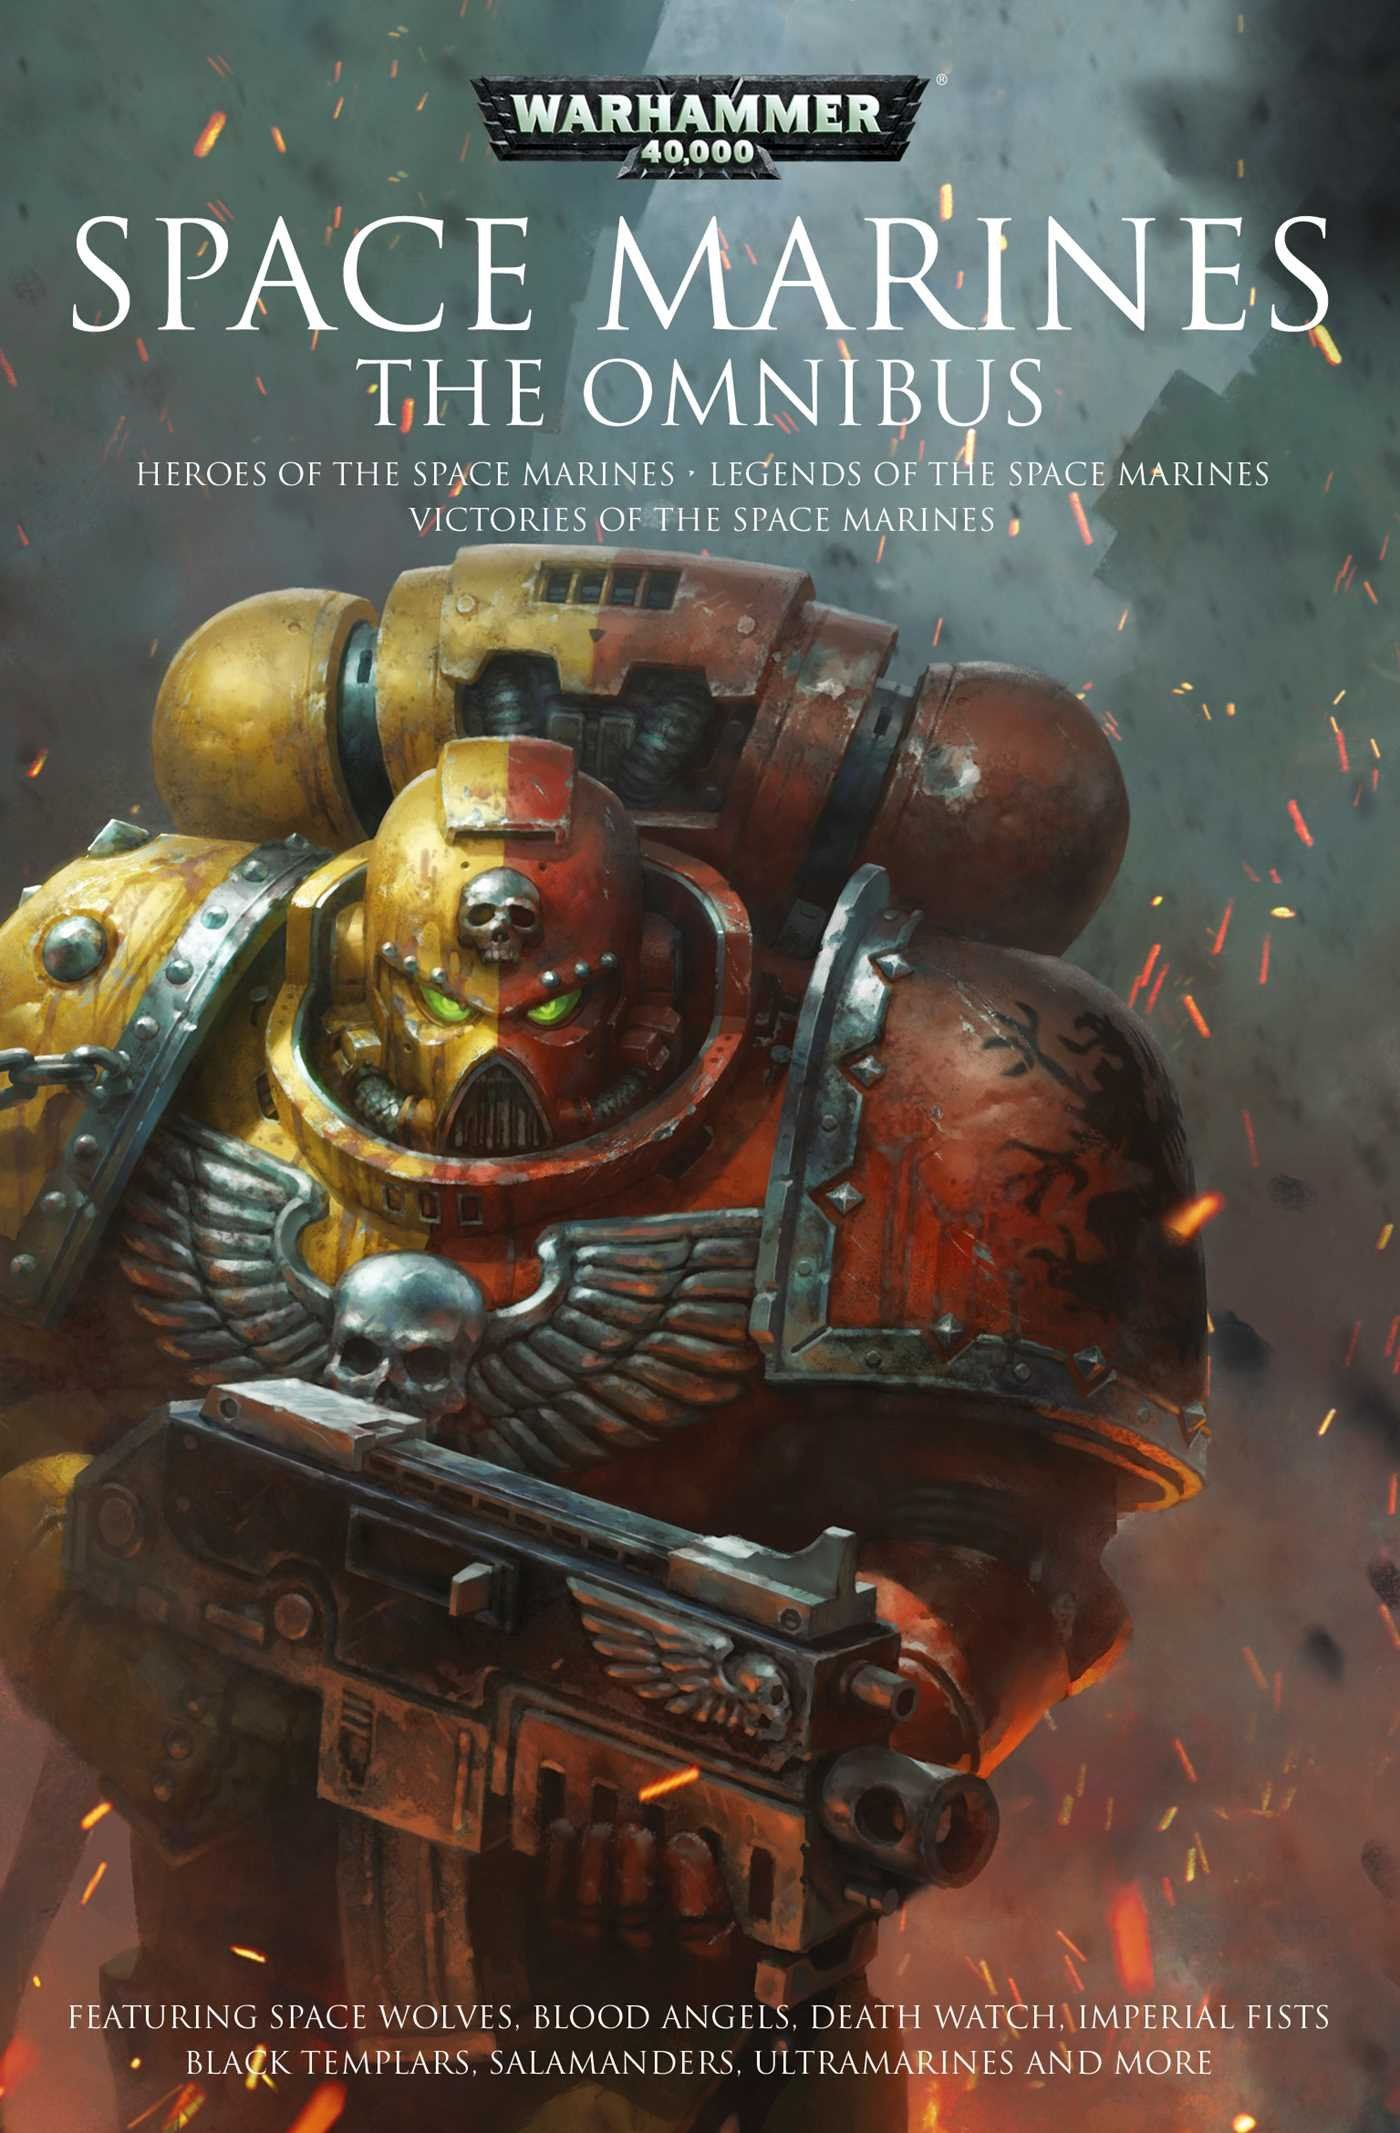 Warhammer 40k victories of christian dunn ebook by unde warhammer 40k victories of christian dunn ebook by unde fandeluxe Image collections